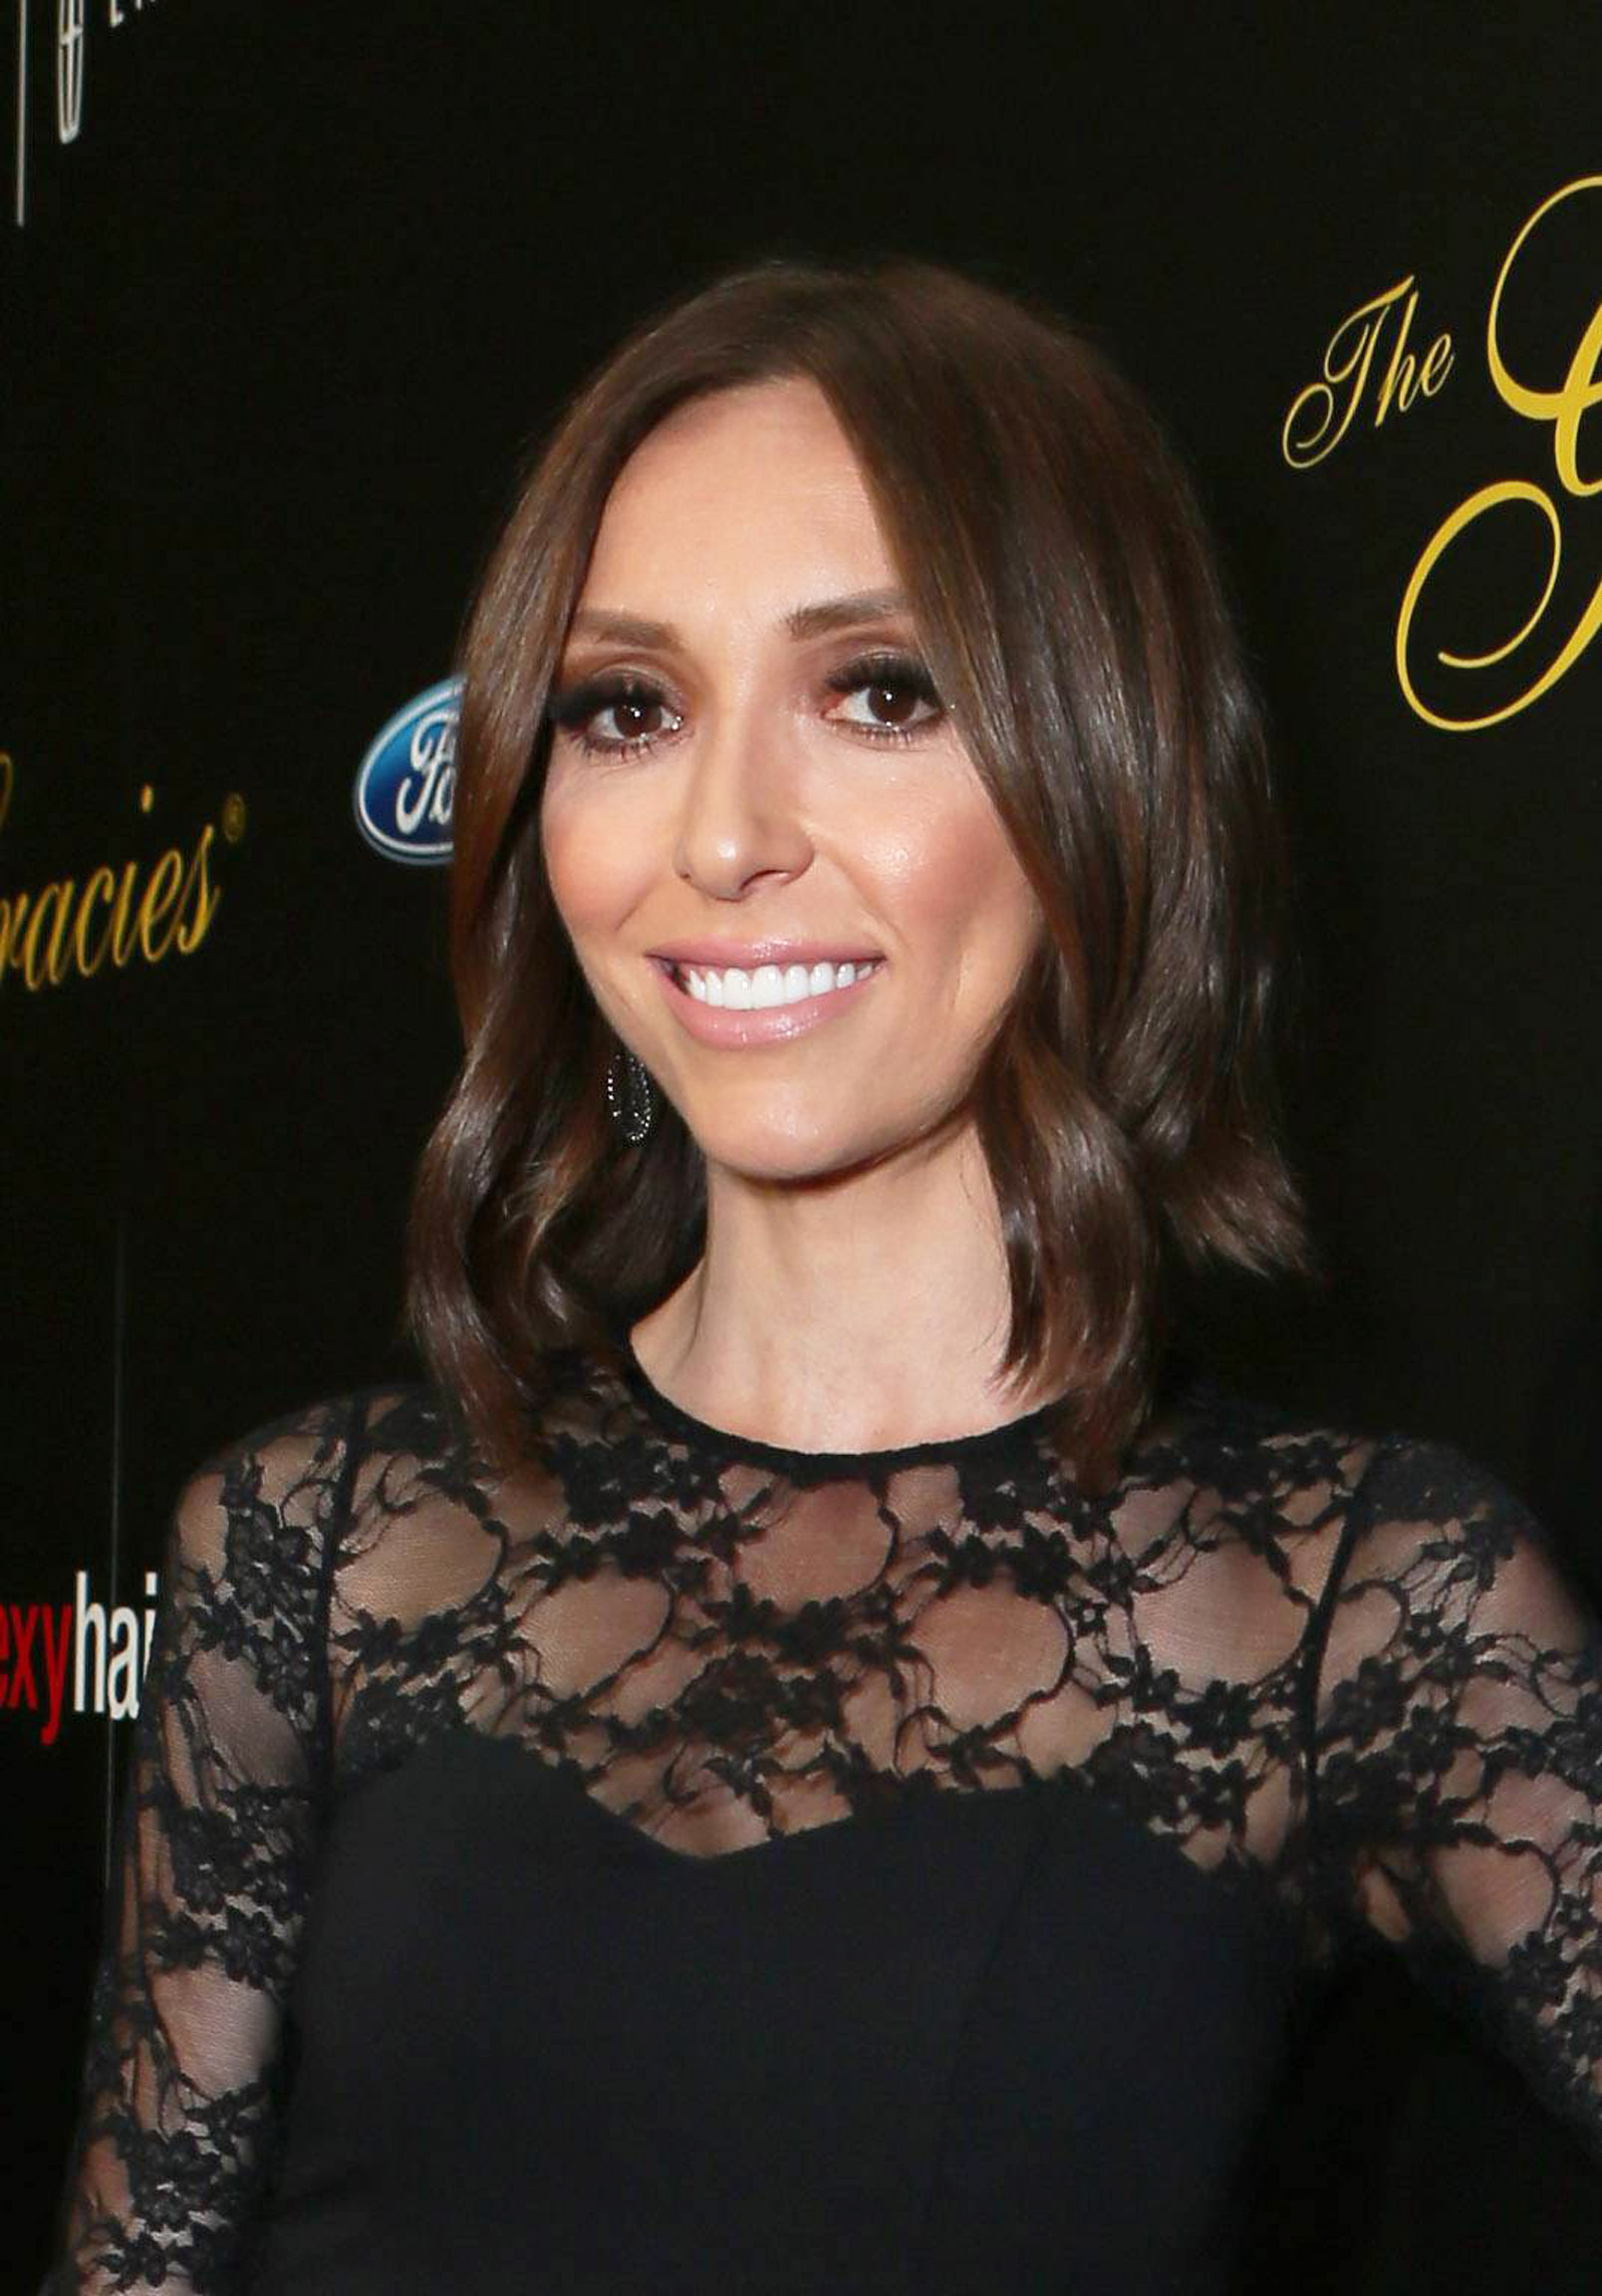 HOW TO: Giuliana Rancic's Tousled Waves at The Gracie Awards